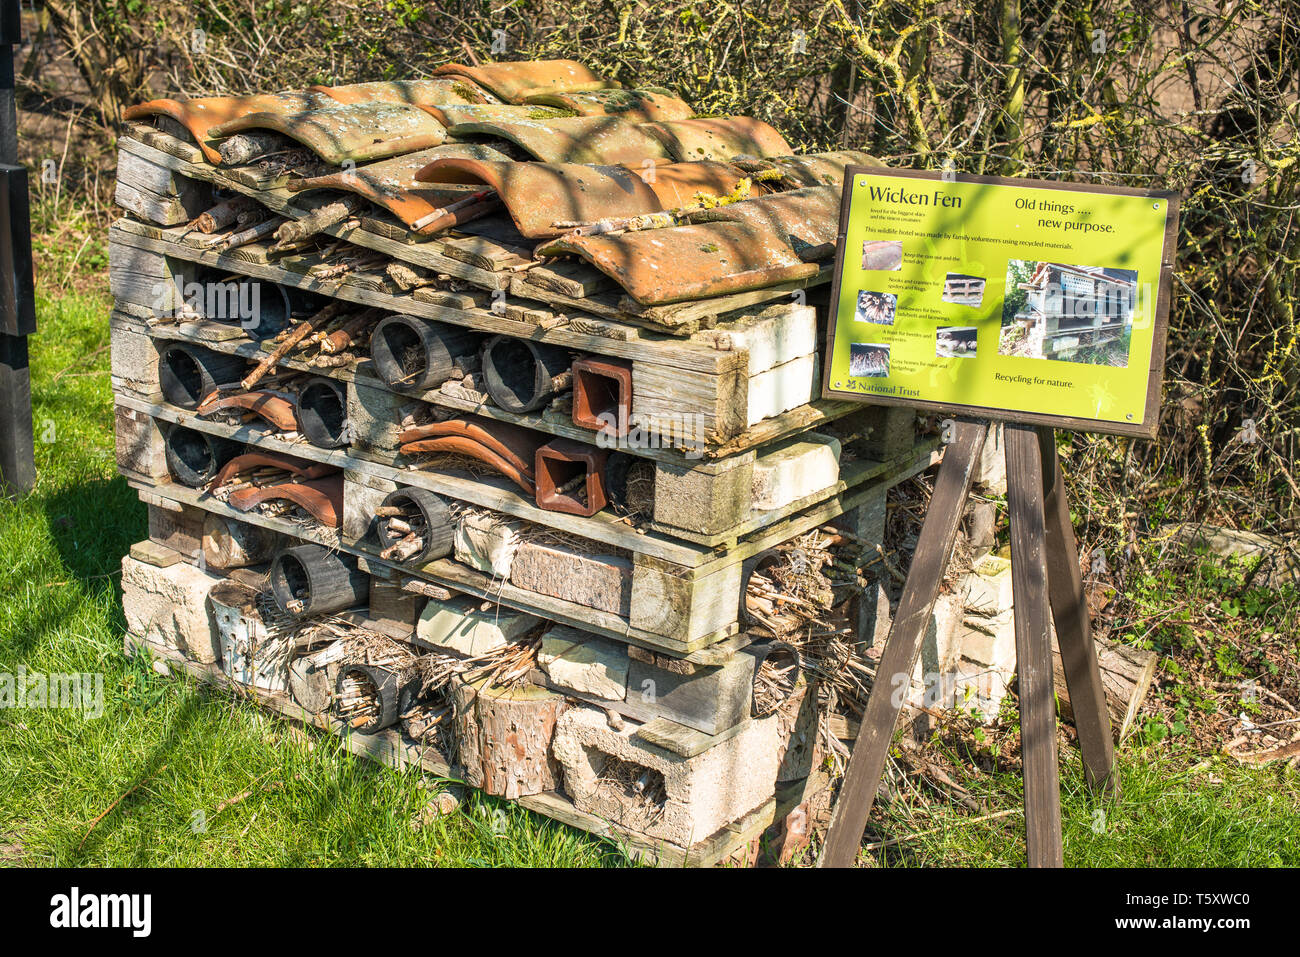 Recycling materials on display at Wicken Fen visitor centre, Cambridgeshire, England, UK. - Stock Image